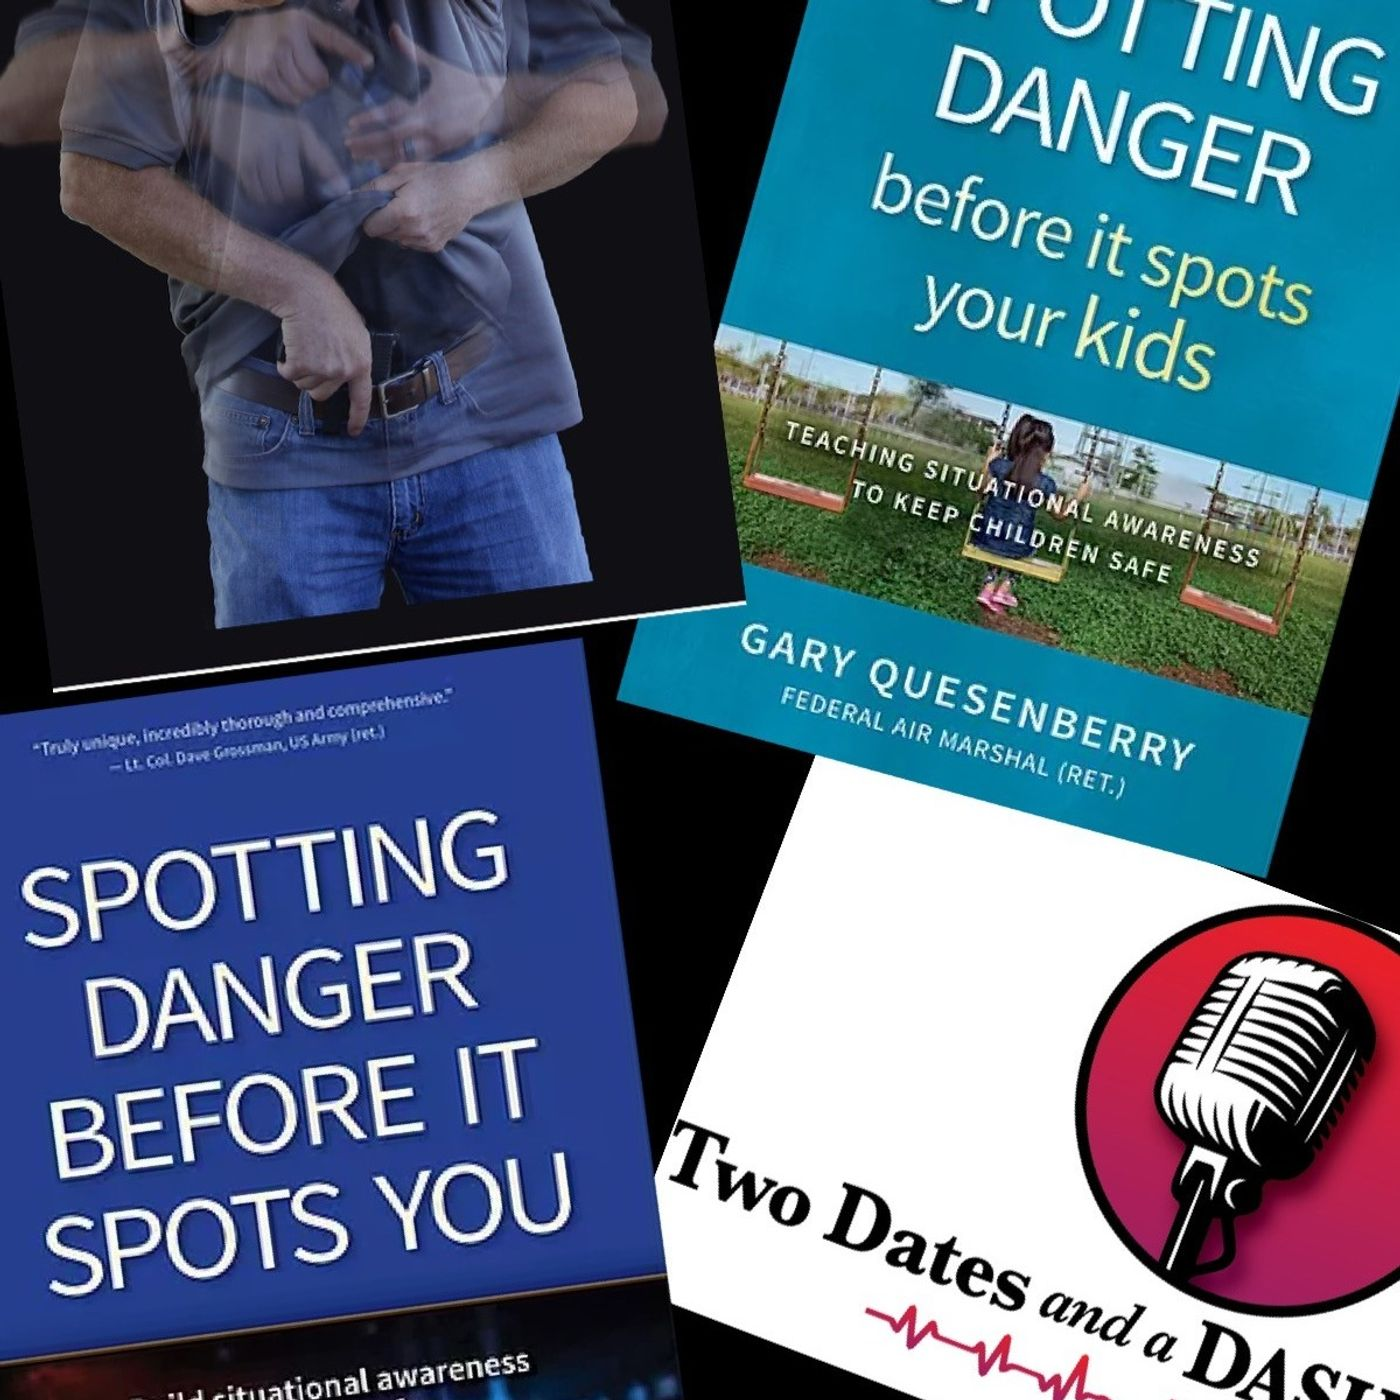 Two Dates and a Dash Podcast Episode 93: Retired Federal Agent and Author, Gary Quesenberry